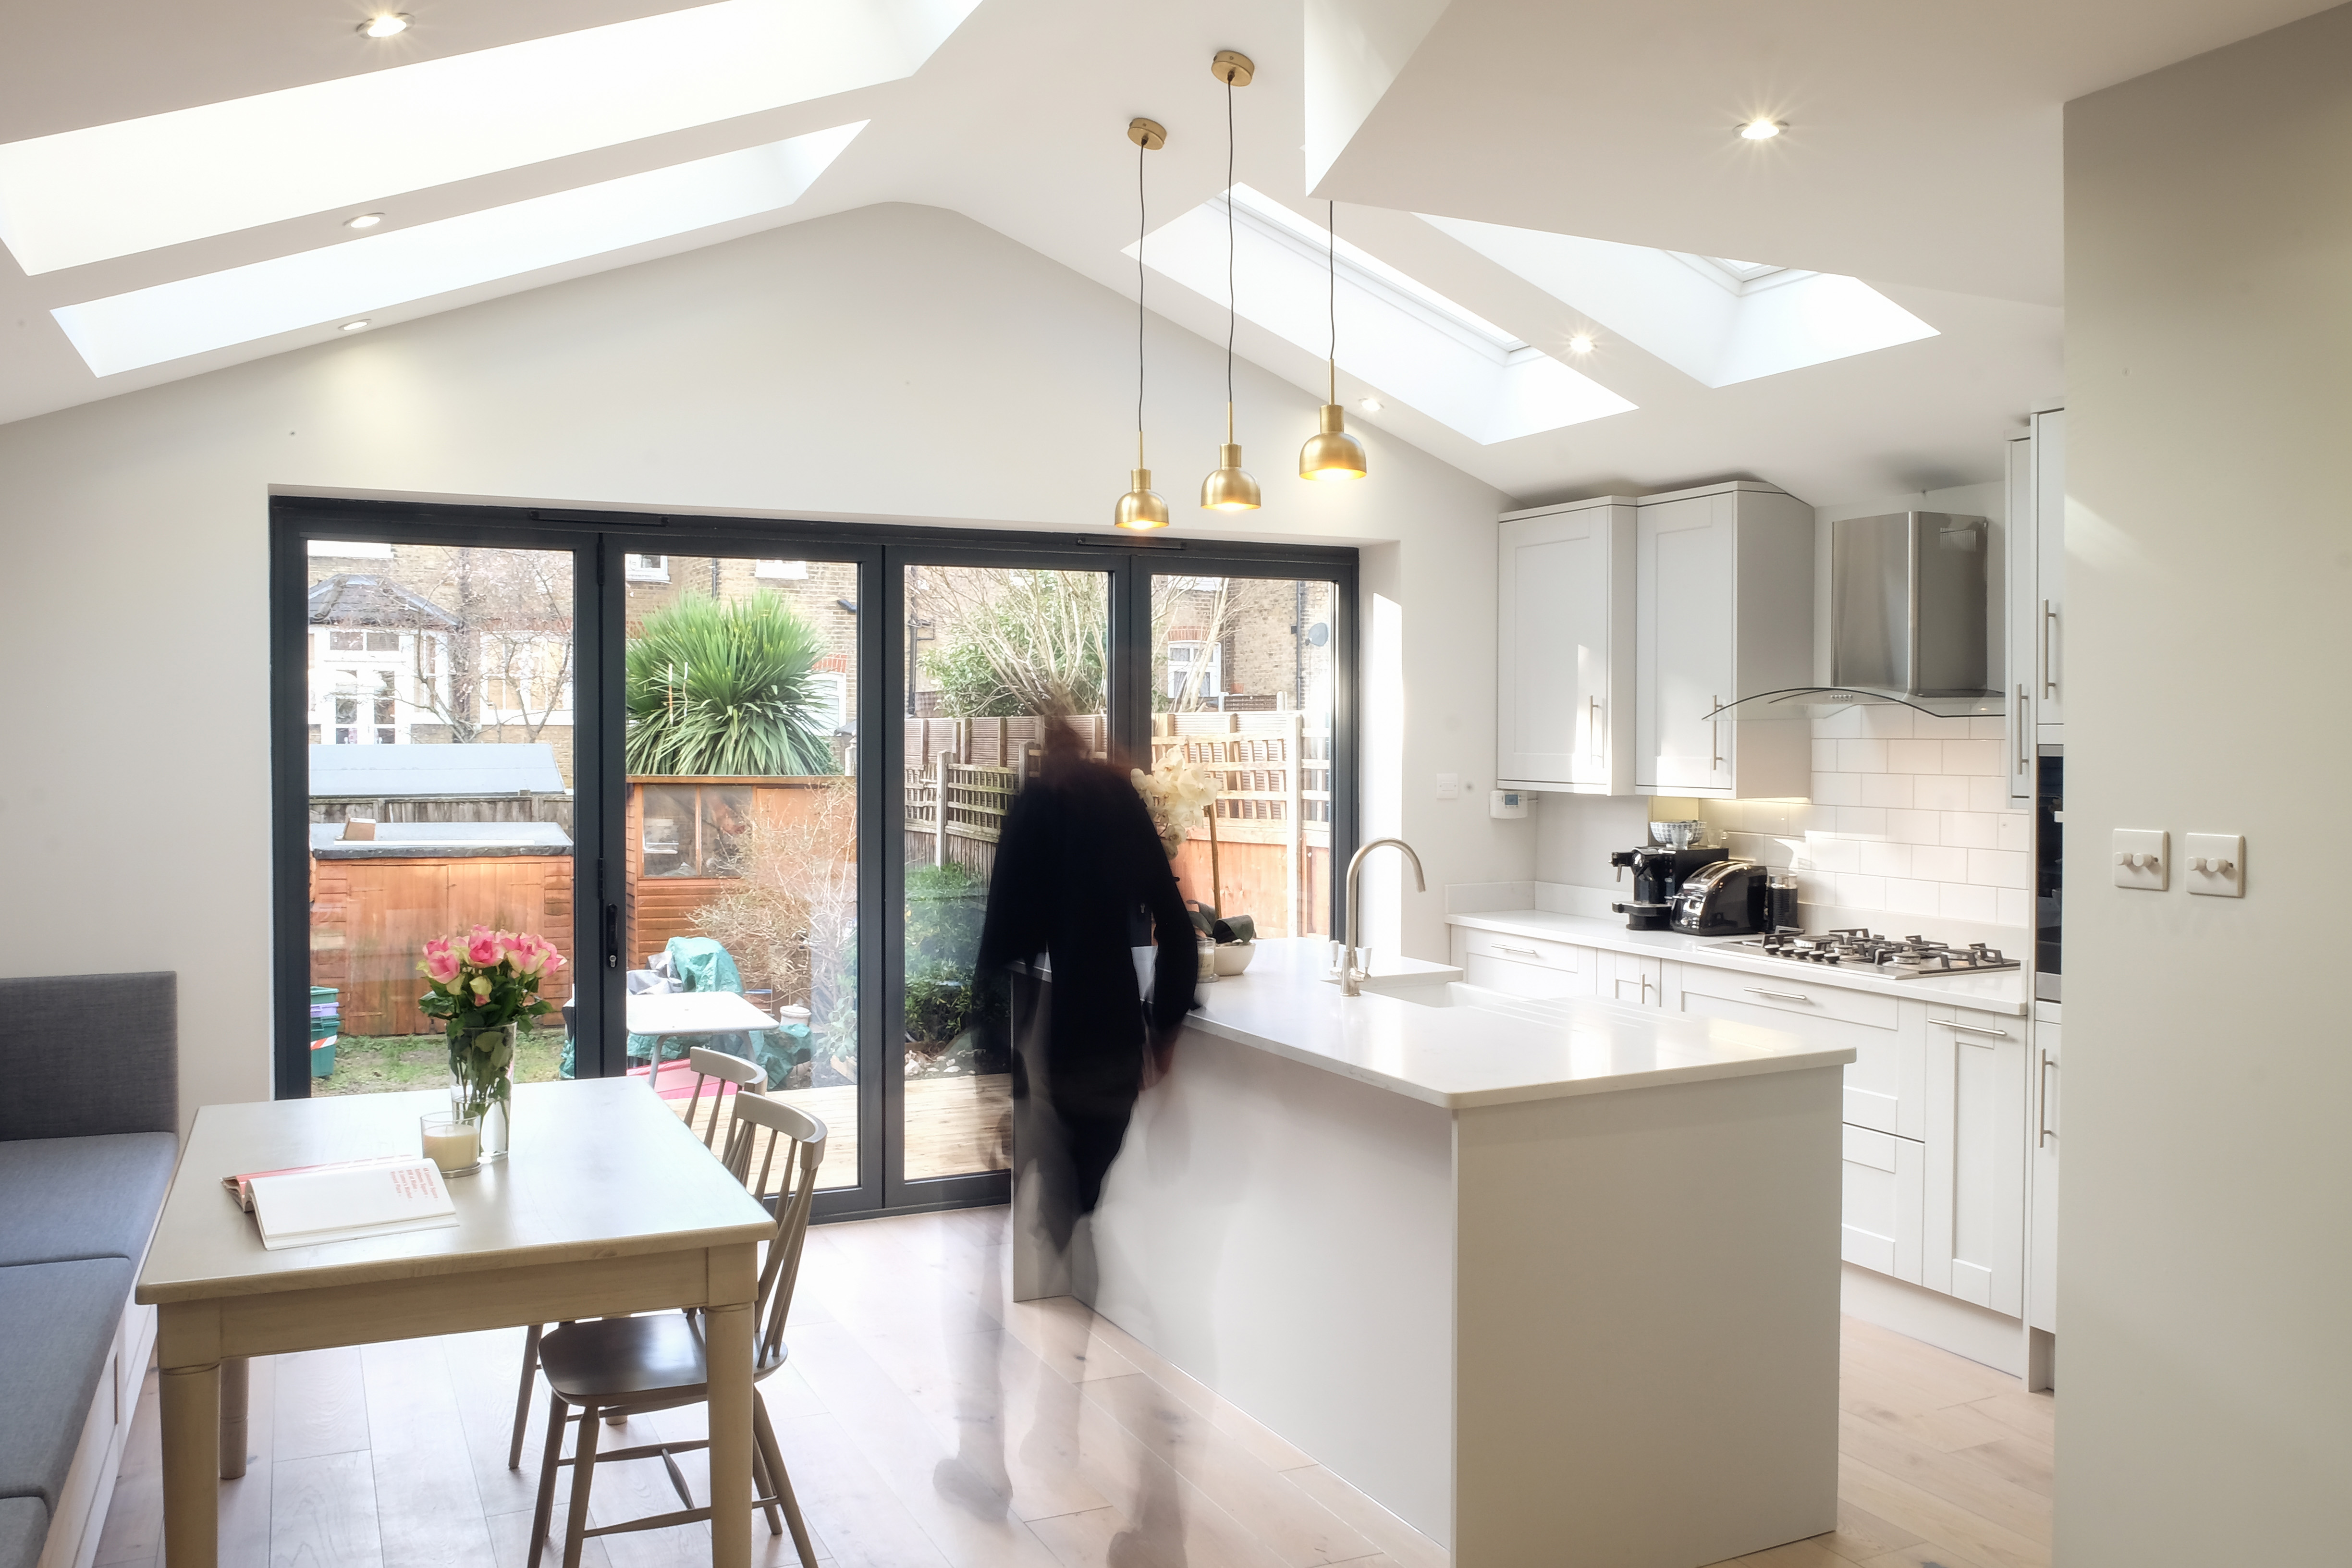 </p> <p>Find your ideal home design pro on designfor-me.com - get matched and see who's interested in your home project. Click image to see more inspiration from our design pros</p> <p>Design by Will, architect from Brighton and Hove, South East</p> <p>#architecture #homedesign #modernhomes #homeinspiration #kitchens #kitchendesign #kitcheninspiration #kitchenideas #kitchengoals #extensions #extensiondesign #extensioninspiration #extensionideas #houseextension #skylights #rooflights </p> <p>